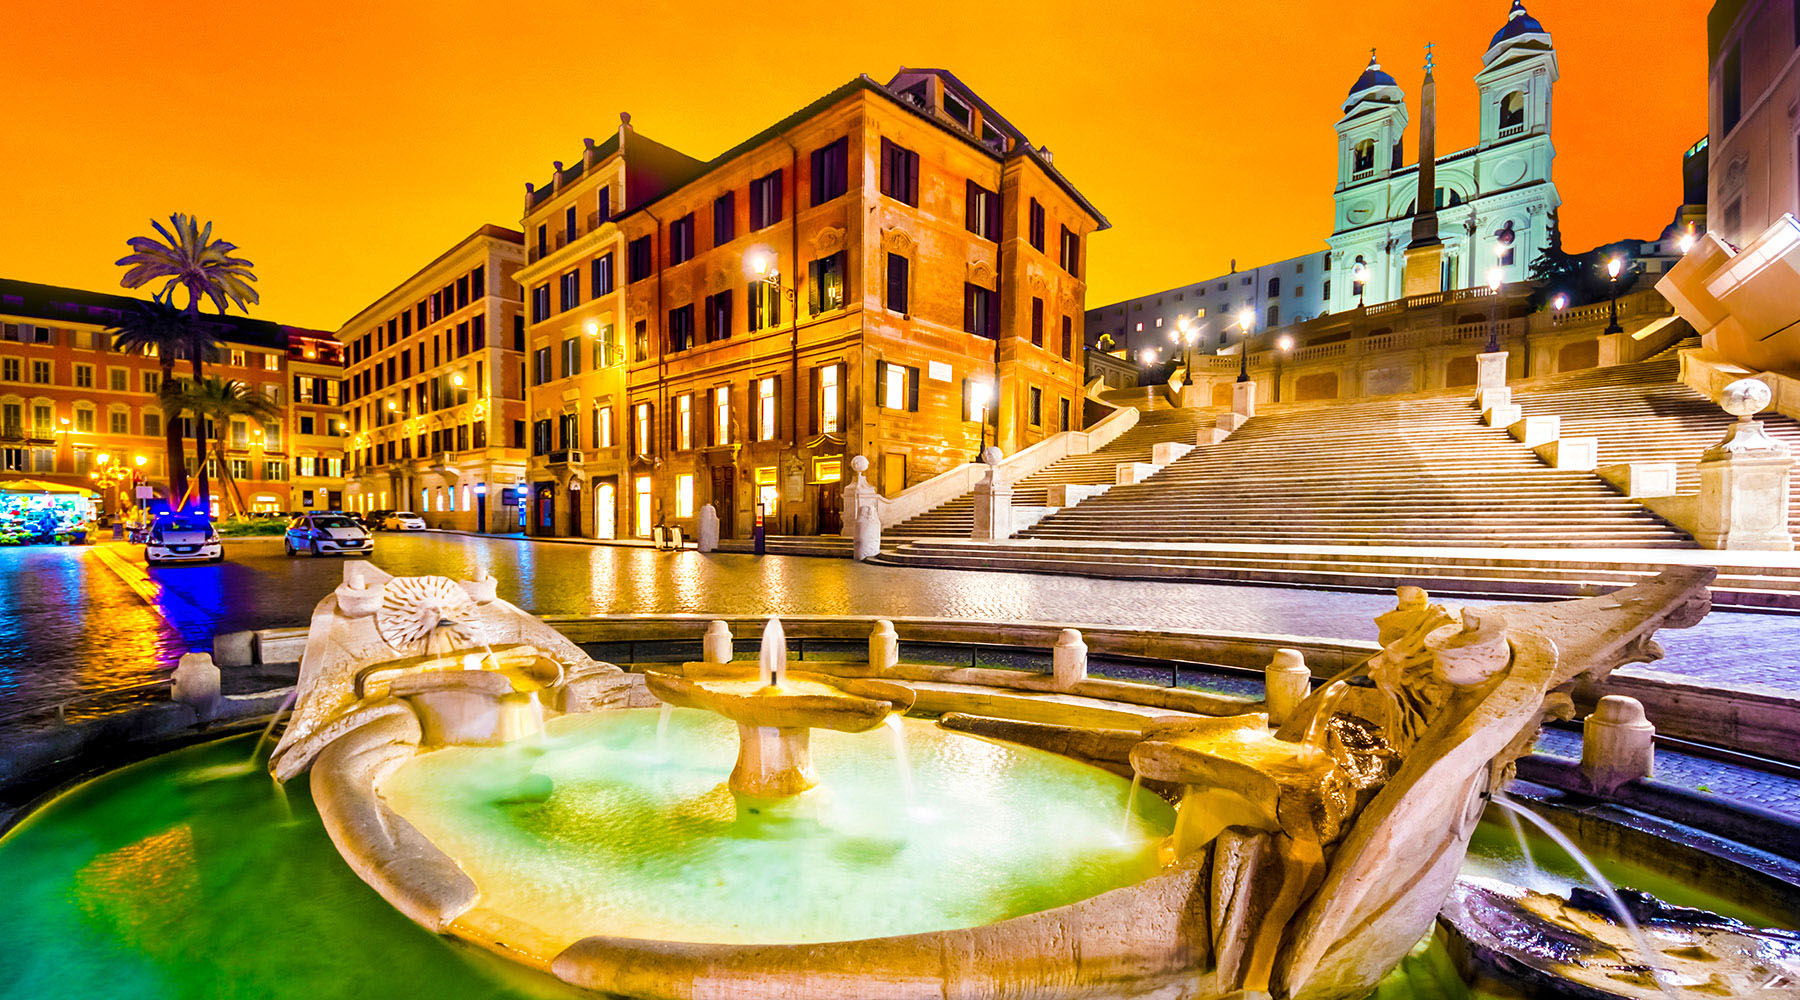 9-Night Italy Intensive Voyage & 3-Night Post Rome Stay